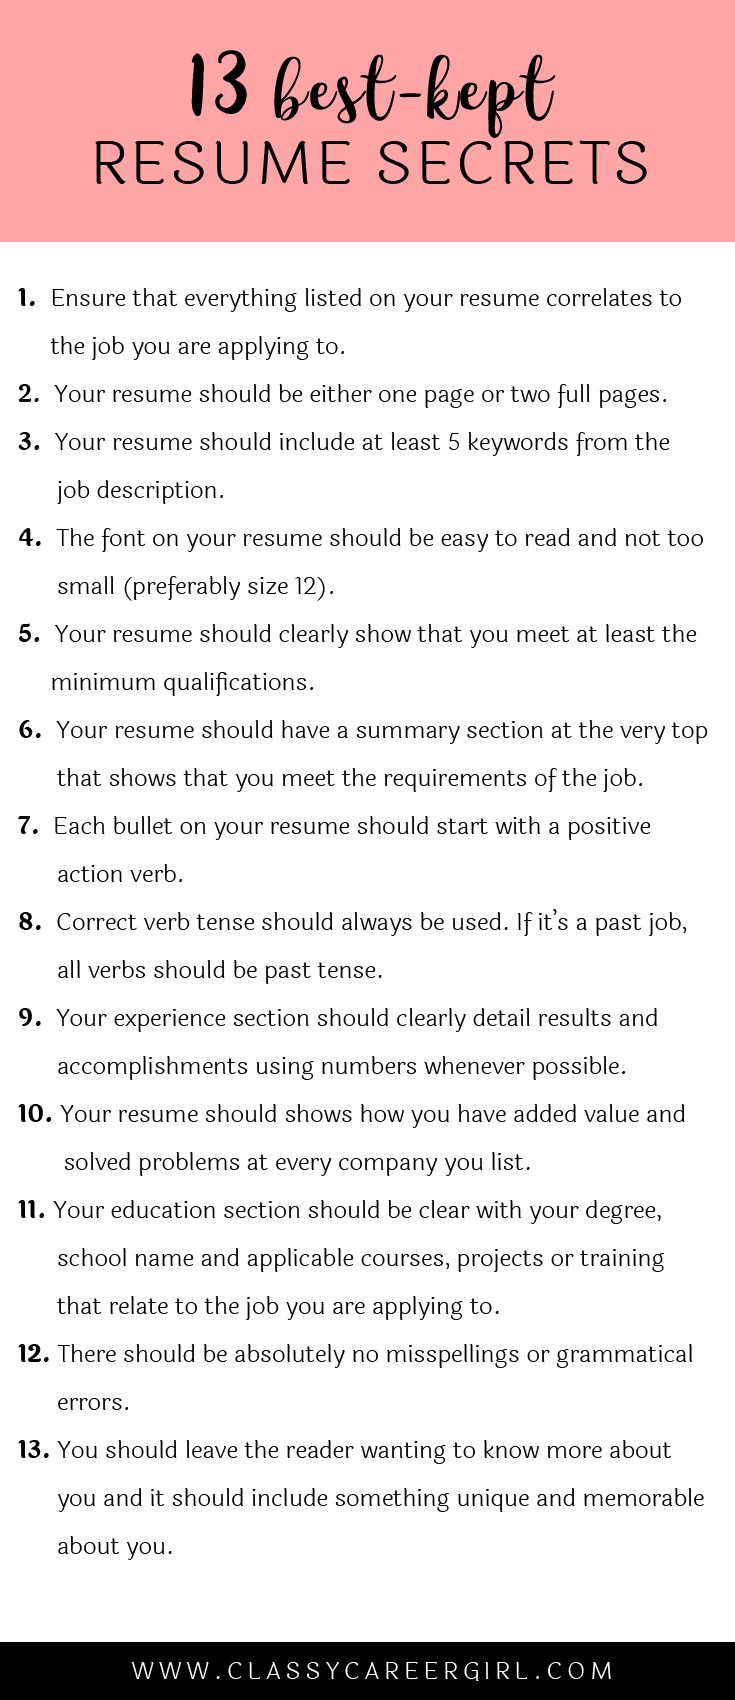 Picnictoimpeachus  Prepossessing  Ideas About Resume On Pinterest  Cv Format Resume Cv And  With Likable Some Hiring Managers Will Toss Your Resume Out If You Dont Know These  With Delightful Customer Service Resume Examples Also Free Online Resume Builder In Addition Resume Profile Examples And Resume Reference Page As Well As Basic Resume Additionally Resum From Pinterestcom With Picnictoimpeachus  Likable  Ideas About Resume On Pinterest  Cv Format Resume Cv And  With Delightful Some Hiring Managers Will Toss Your Resume Out If You Dont Know These  And Prepossessing Customer Service Resume Examples Also Free Online Resume Builder In Addition Resume Profile Examples From Pinterestcom